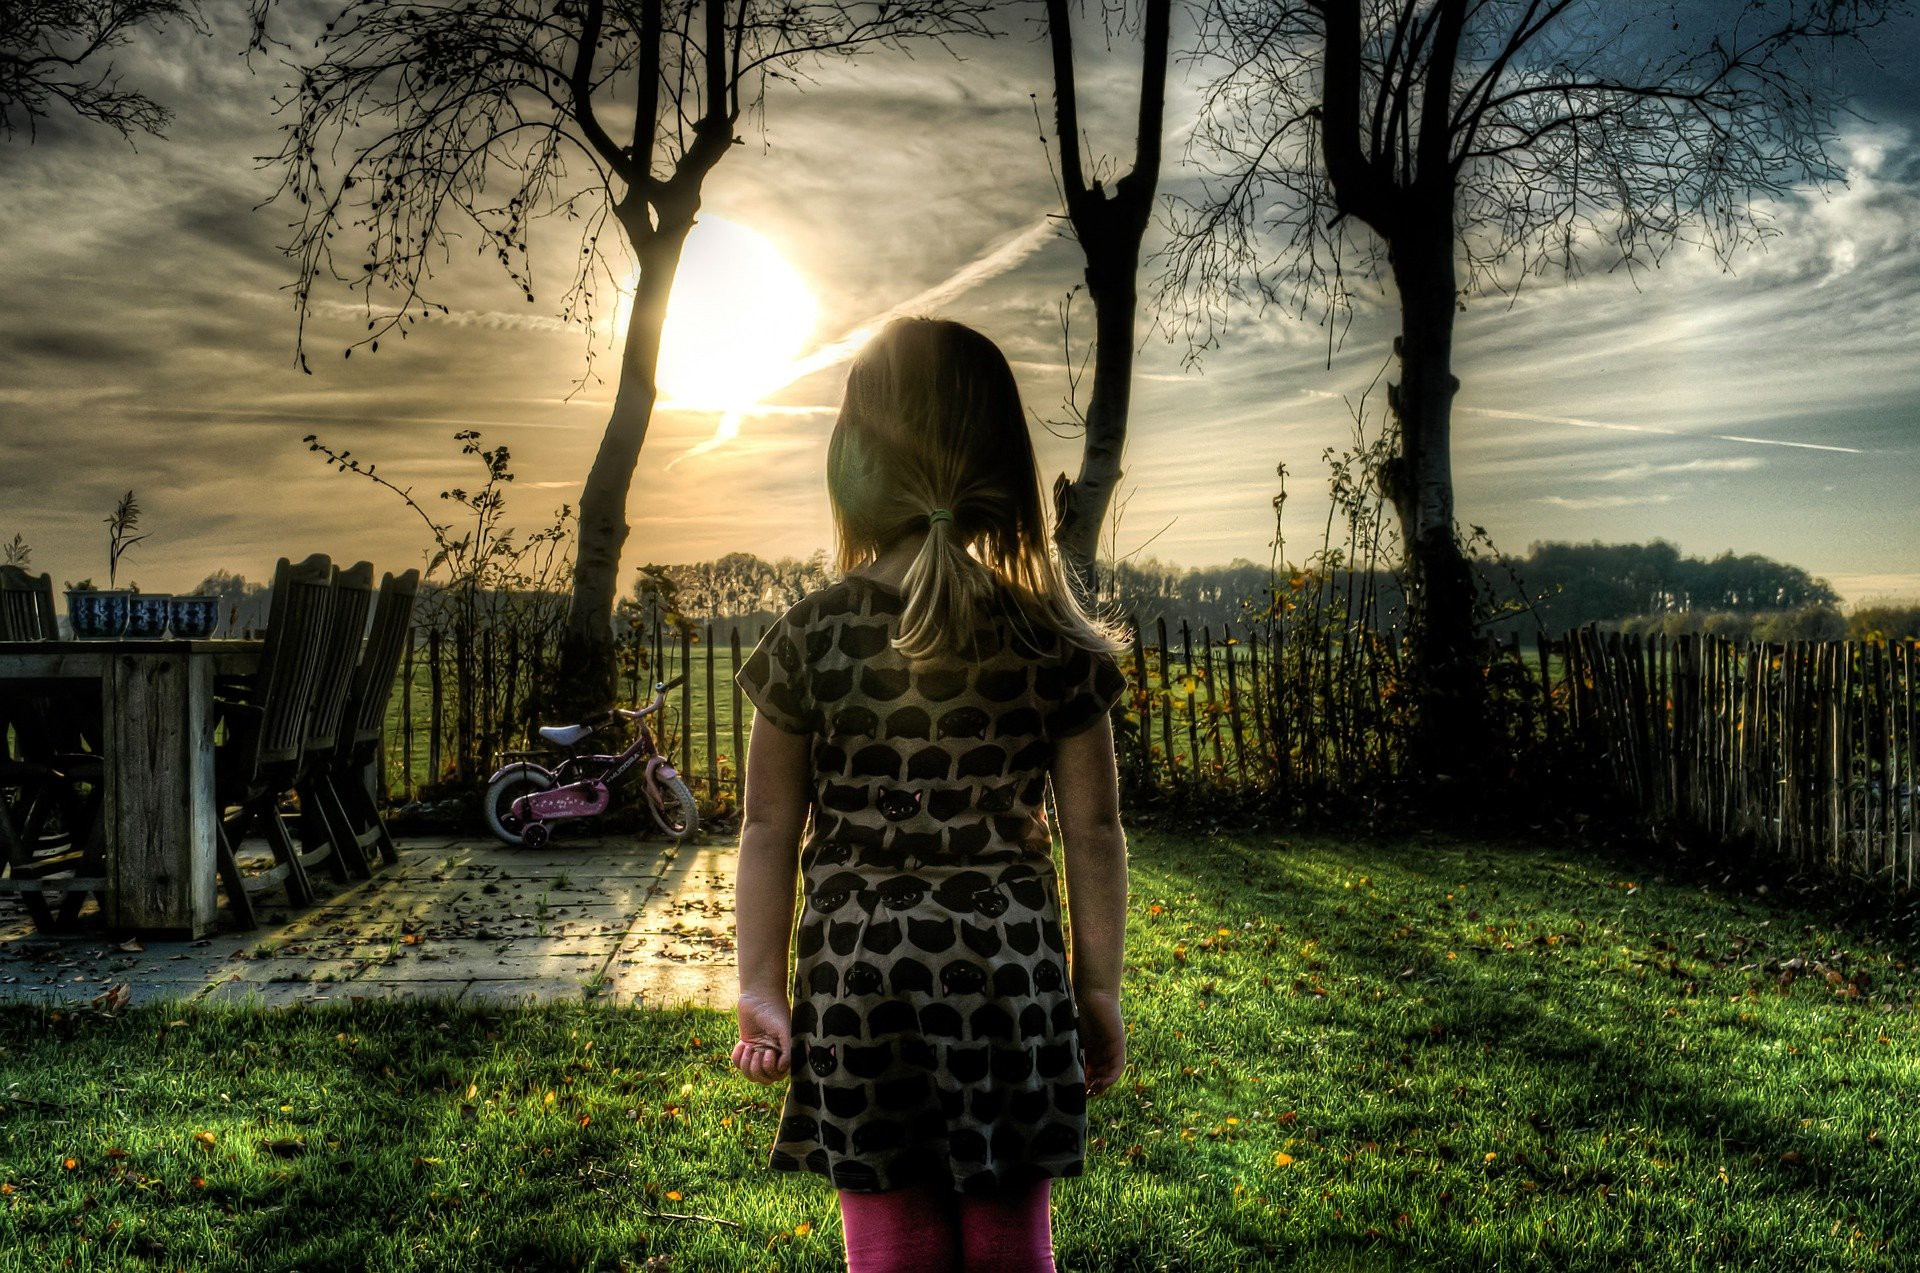 Young child looking at an evening sunset, creepy photgraphs